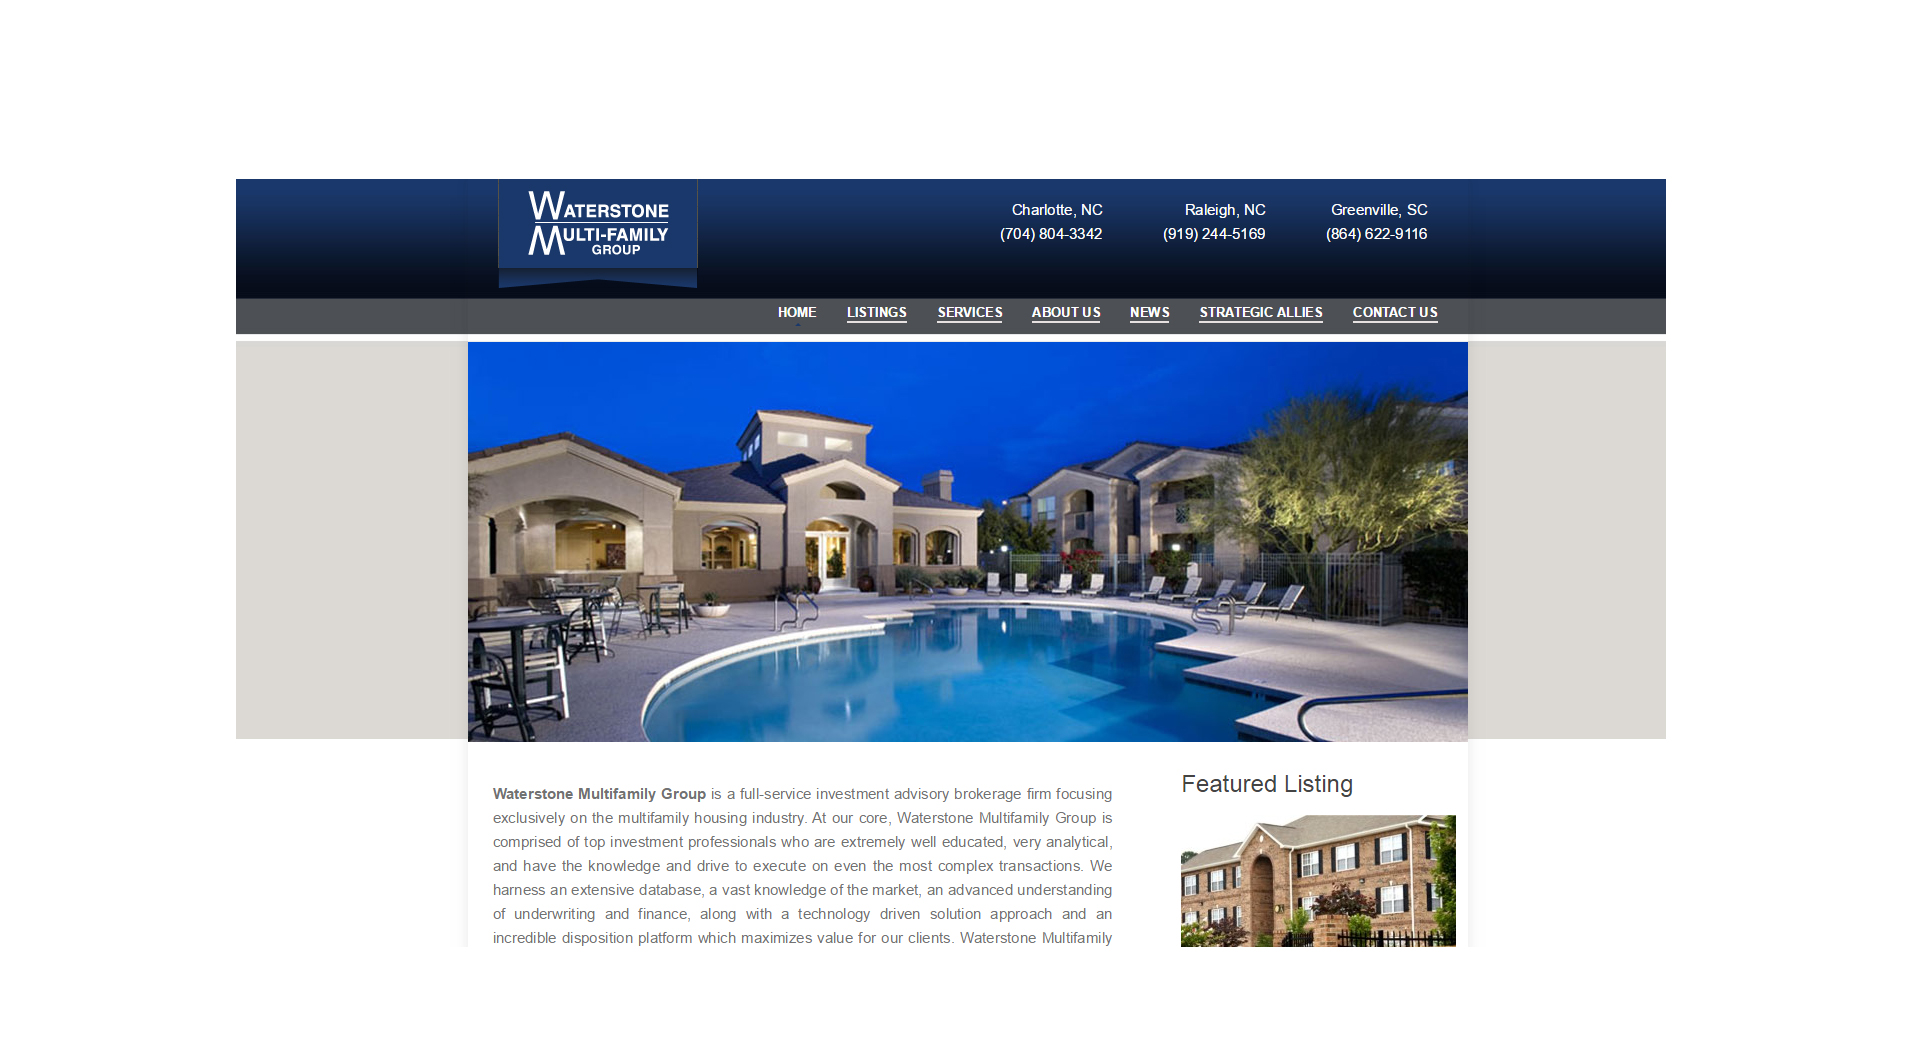 Website Design and Copywriting - Waterstone Multi-Family Group (Real Estate)